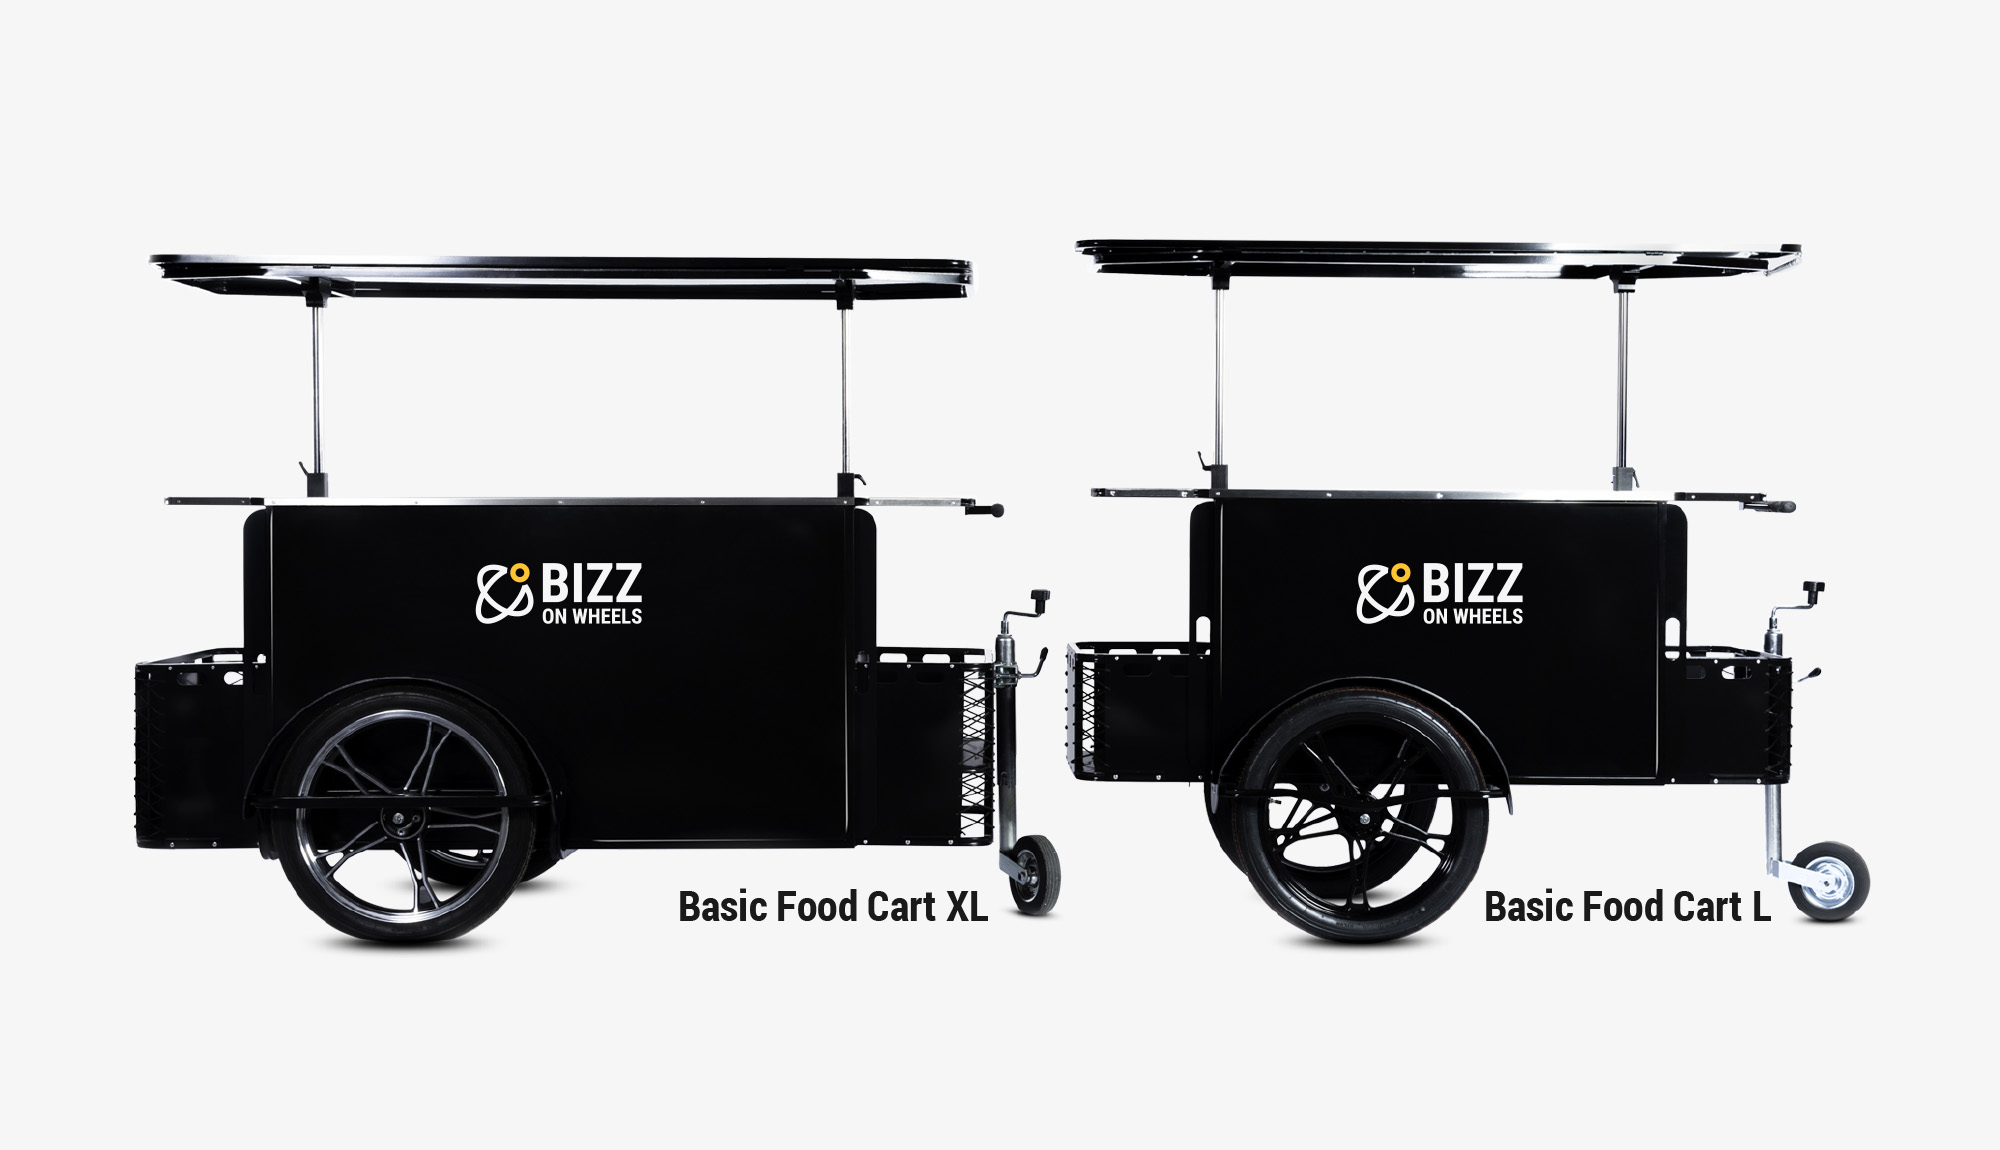 Large and extra large food carts by Bizz On Wheels